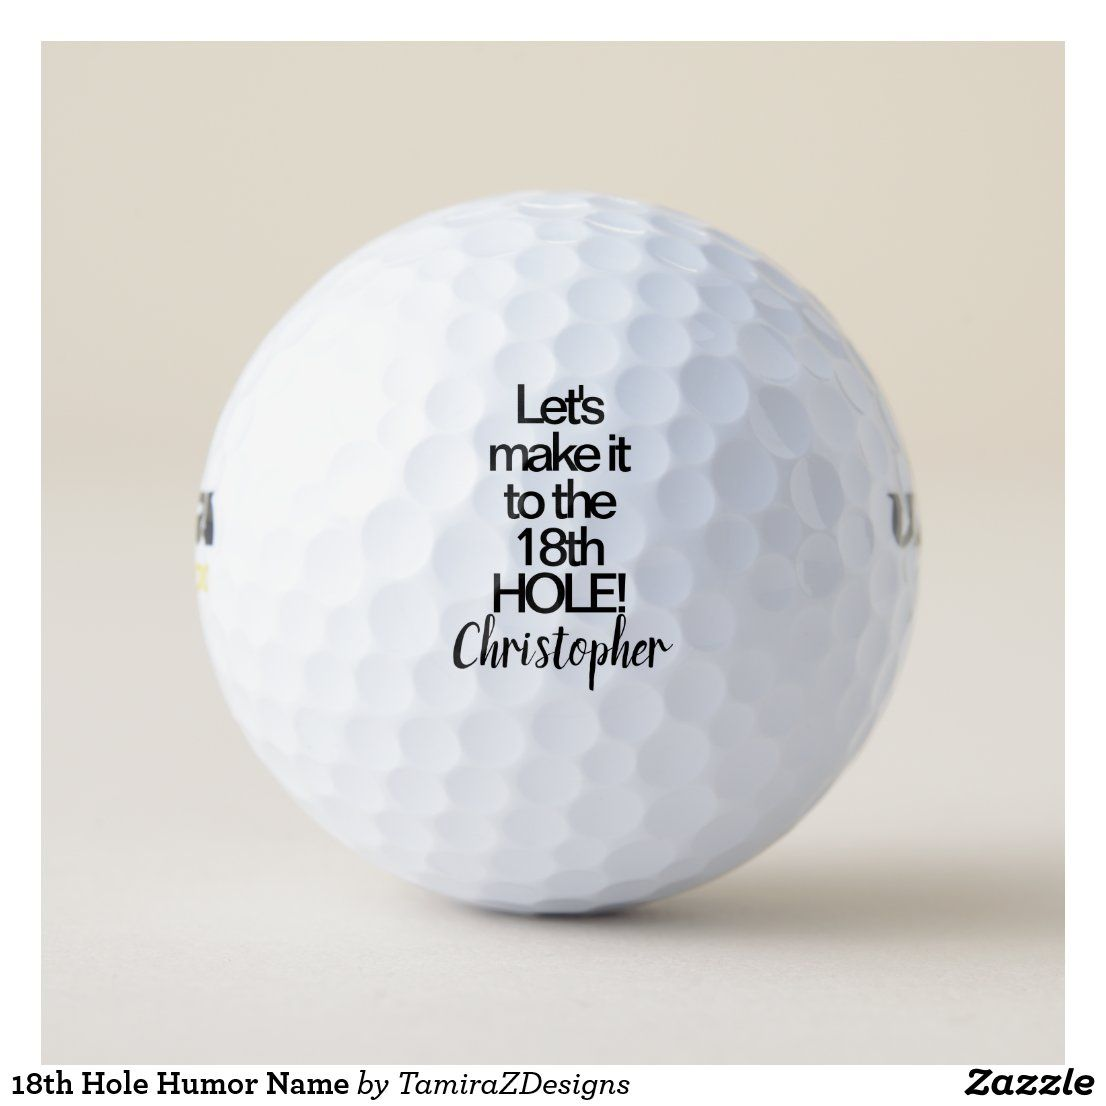 how to hit a golf ball straight off the tee